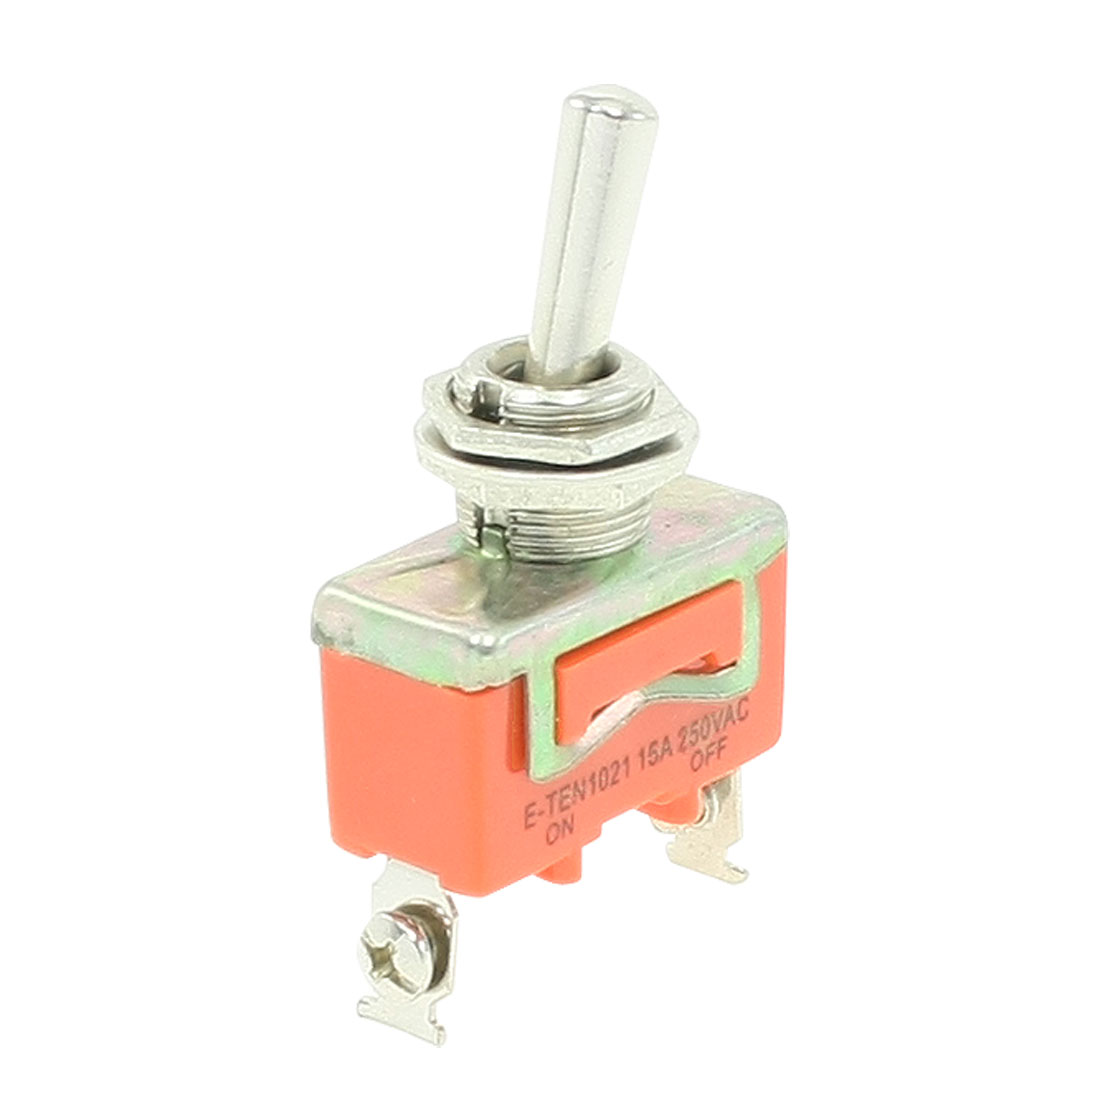 15A 250VAC ON/OFF SPST 2 Position 2-Terminals Toggle Switch